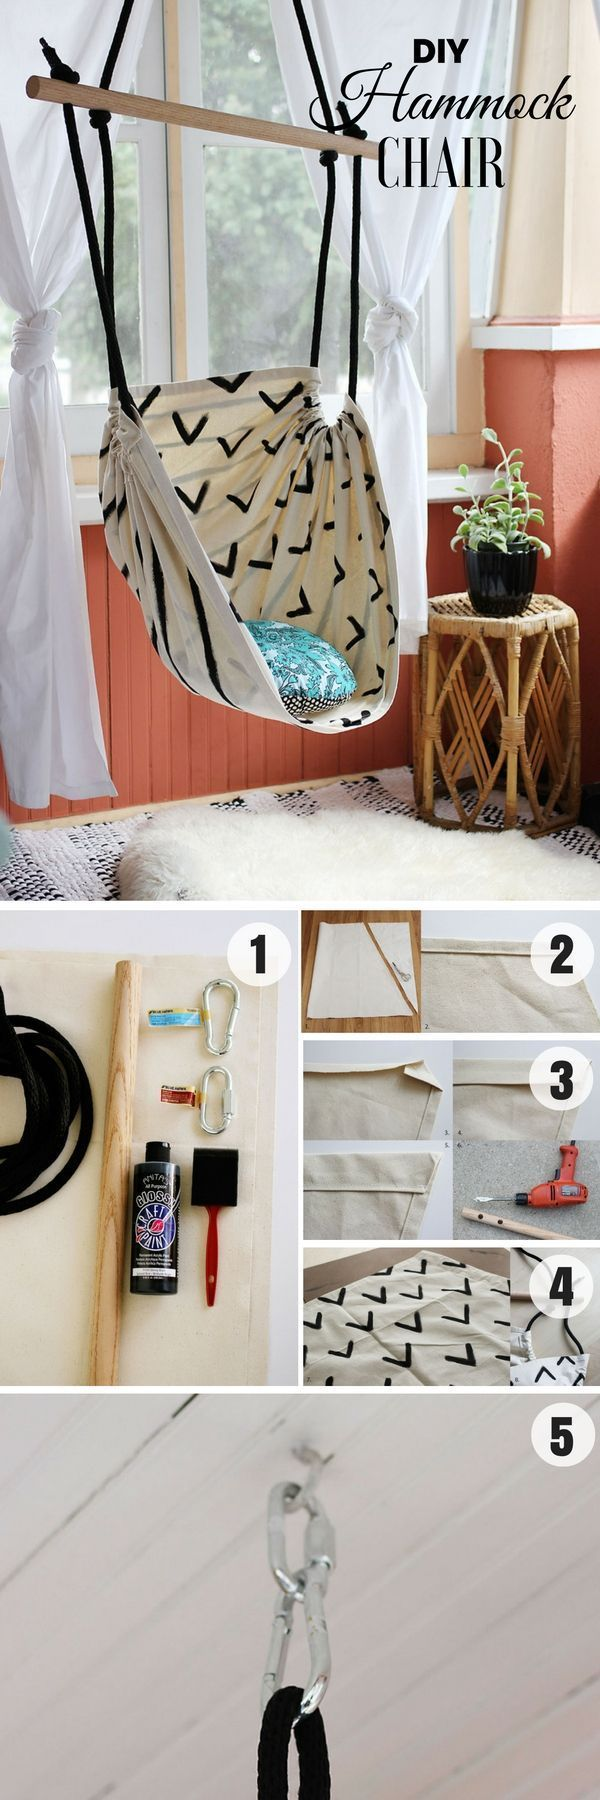 Check out how to make an easy DIY Hammock Chair for bedroom decor /istandarddesign/